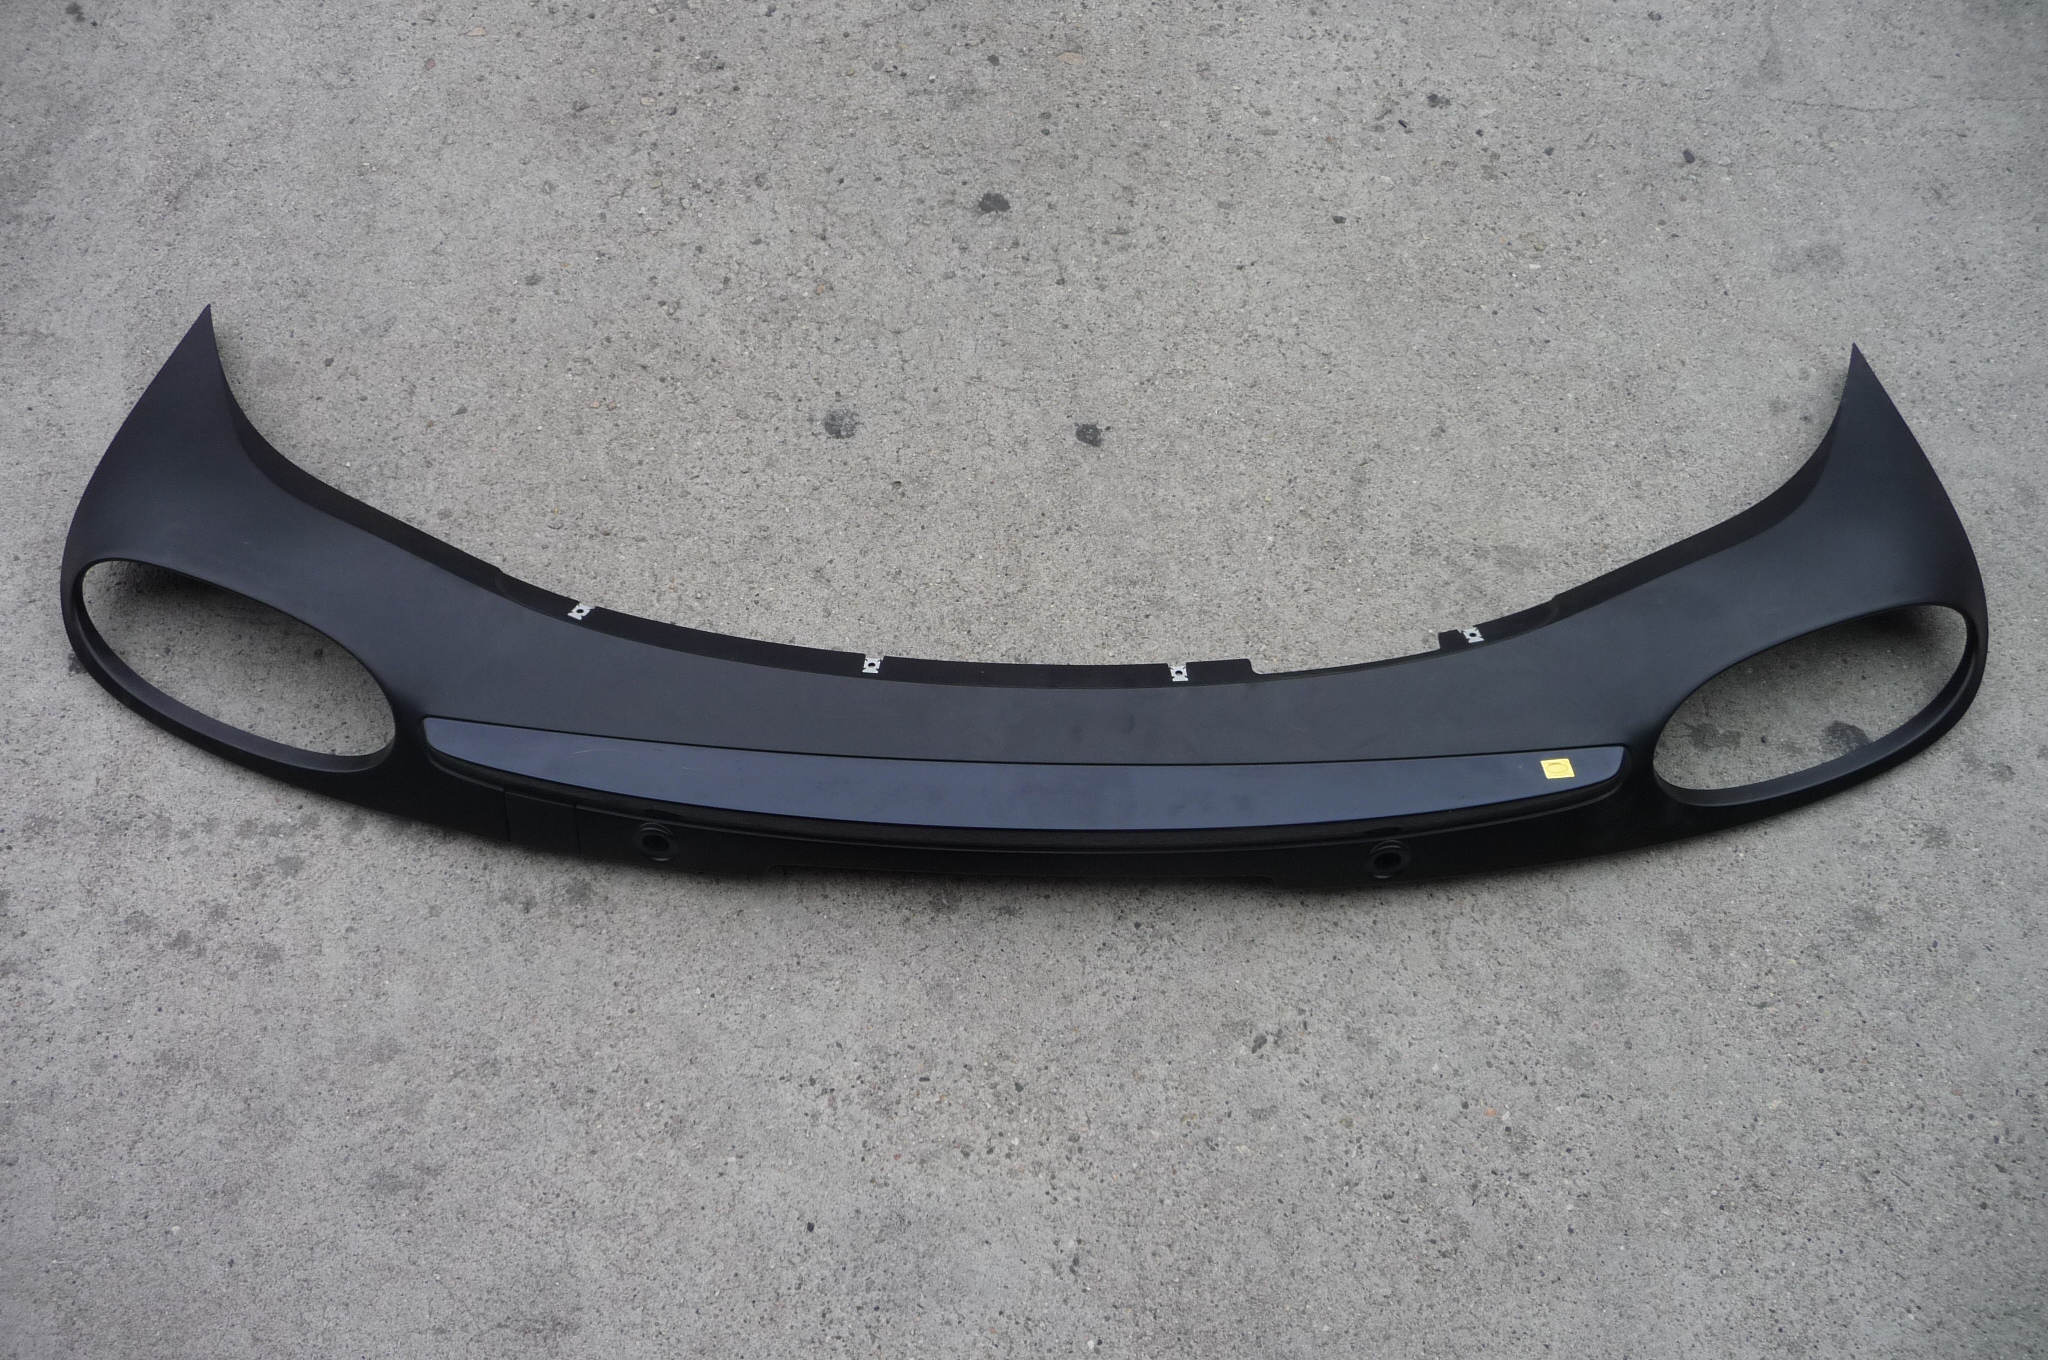 2014 2015 Bentley Continental GT GTC Rear Bumper Molding Cover Grille Skirt - Used Auto Parts Store   LA Global Parts